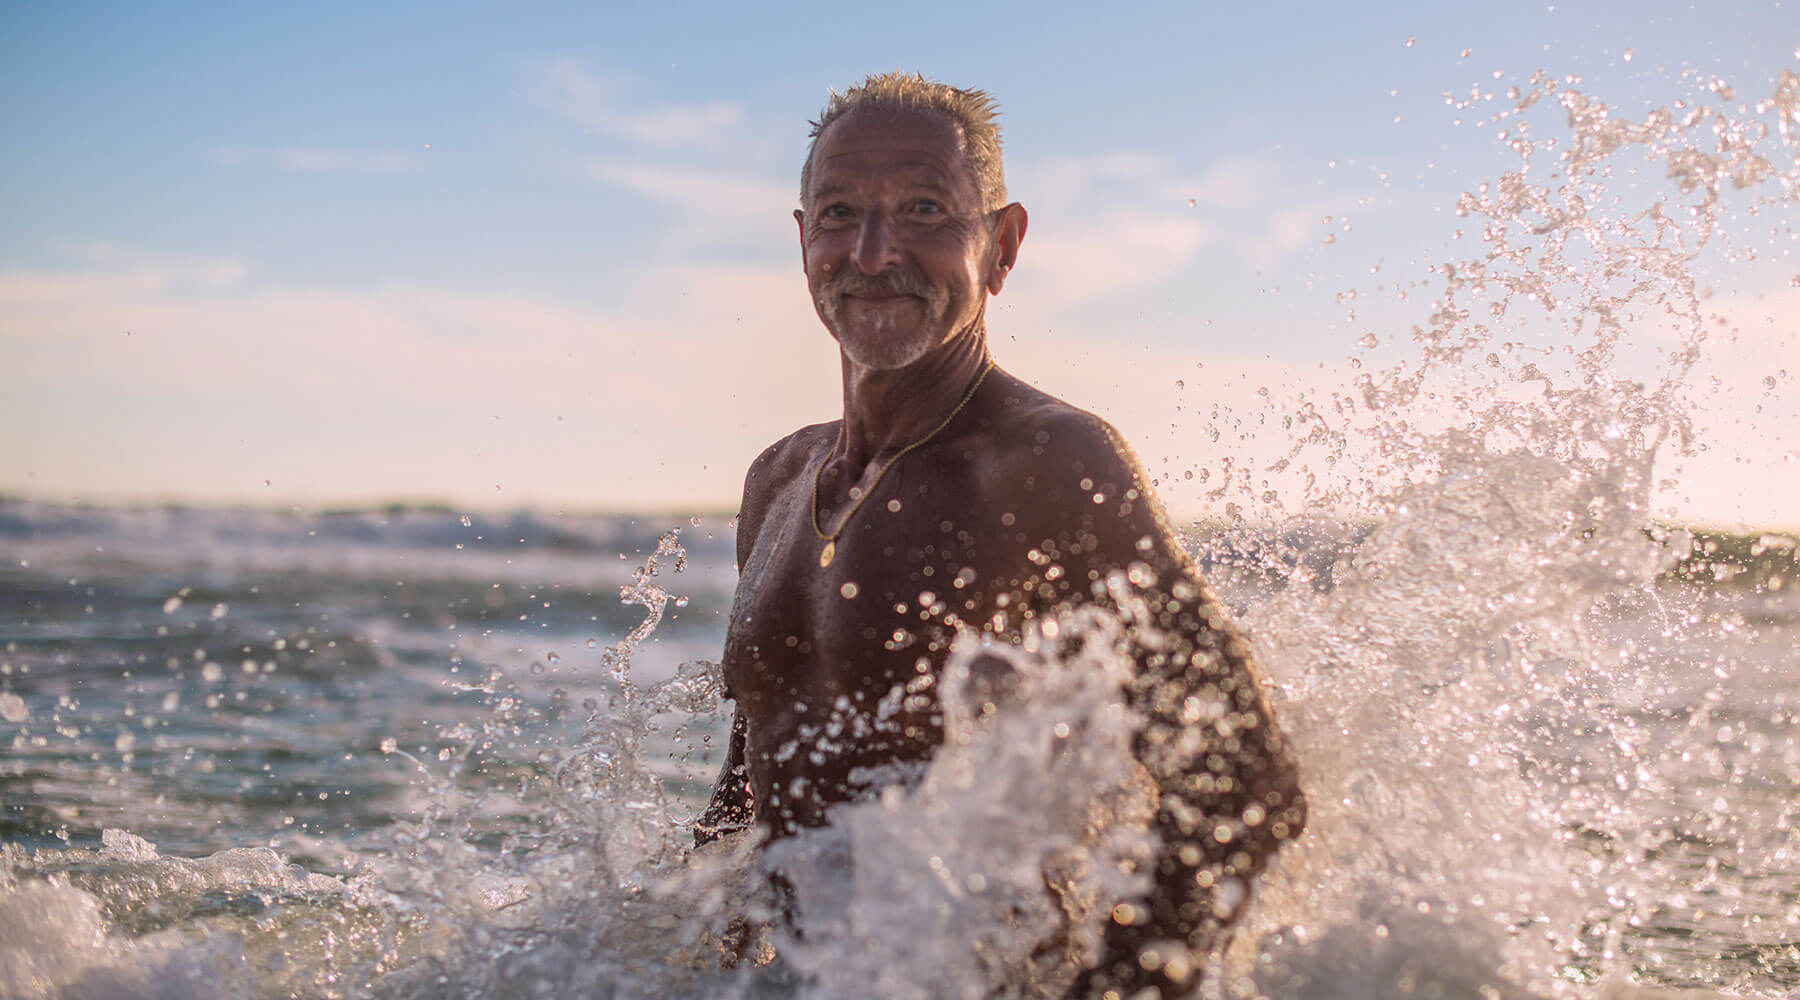 A grandfather in the ocean for 360 Health + Community's resource header